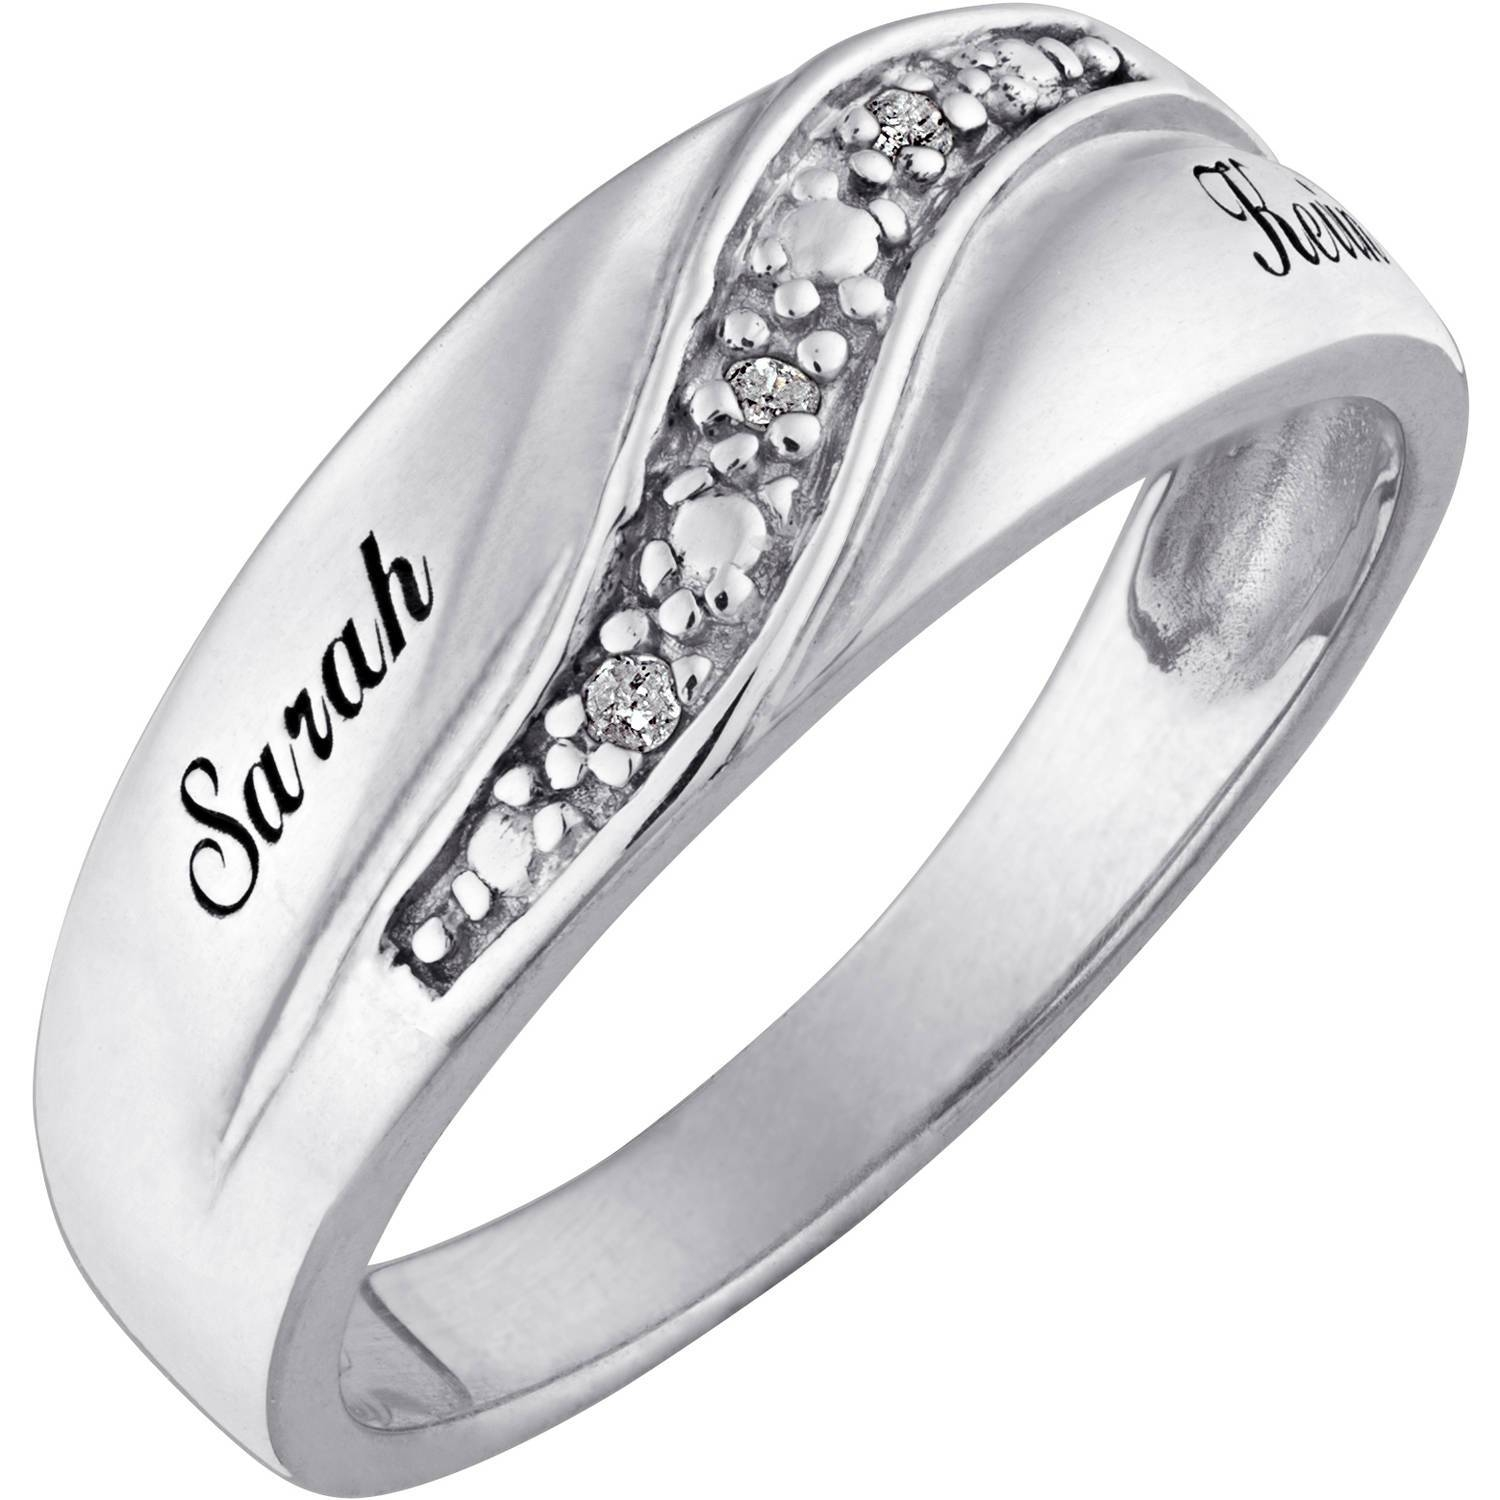 Wal Mart Men S Diamond Rings | Wedding, Promise, Diamond Pertaining To Walmart Jewelry Men's Wedding Bands (View 4 of 15)